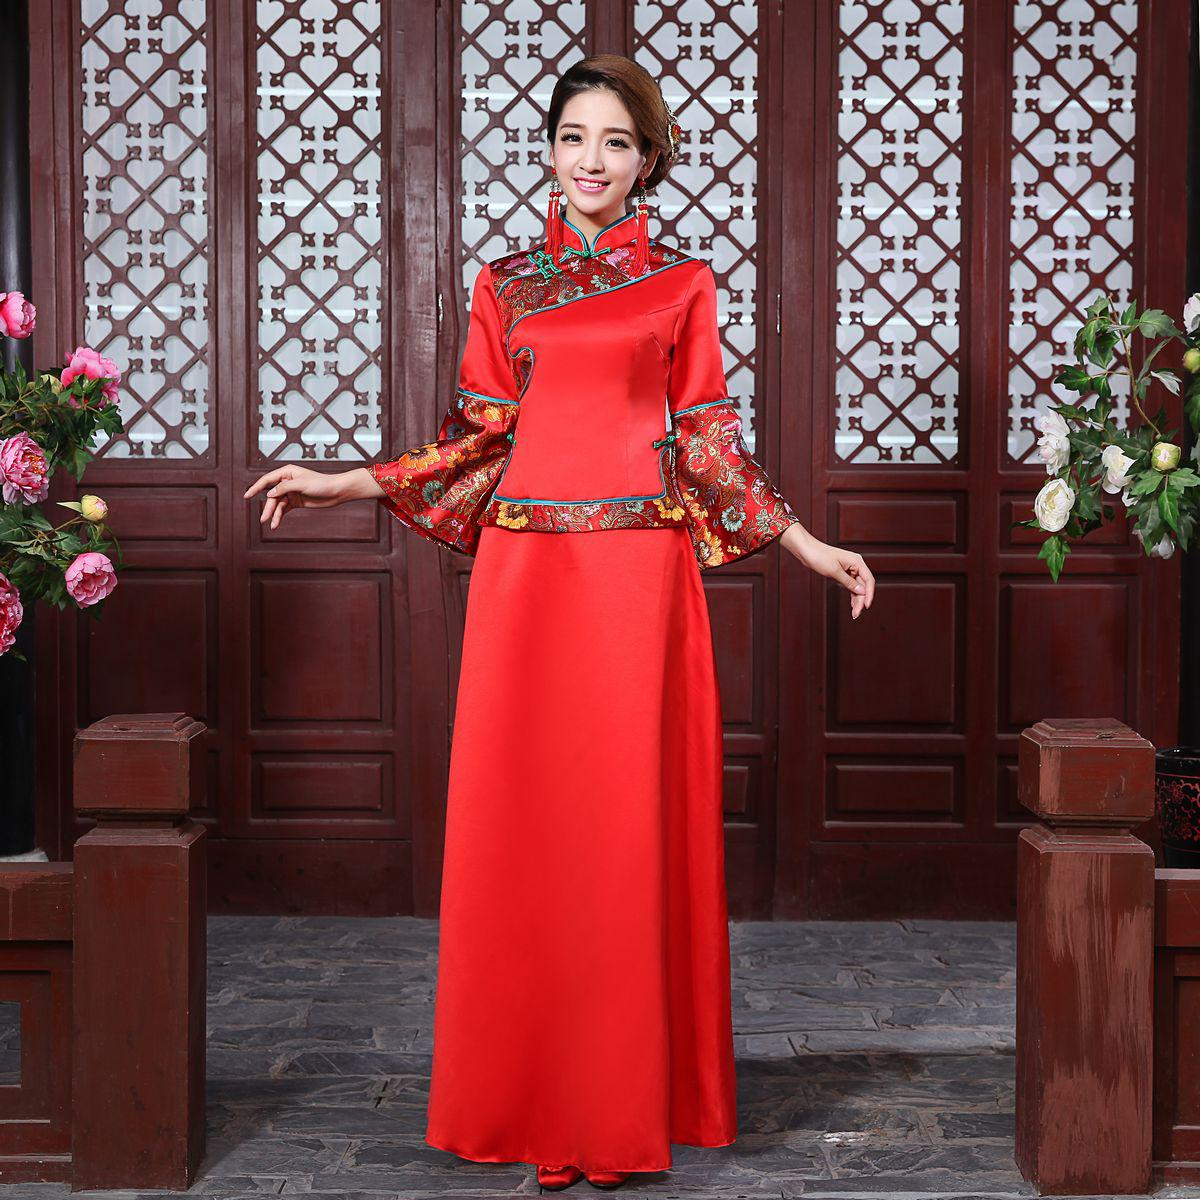 2017 vintage chinese style wedding dress show clothing for Chinese style wedding dress